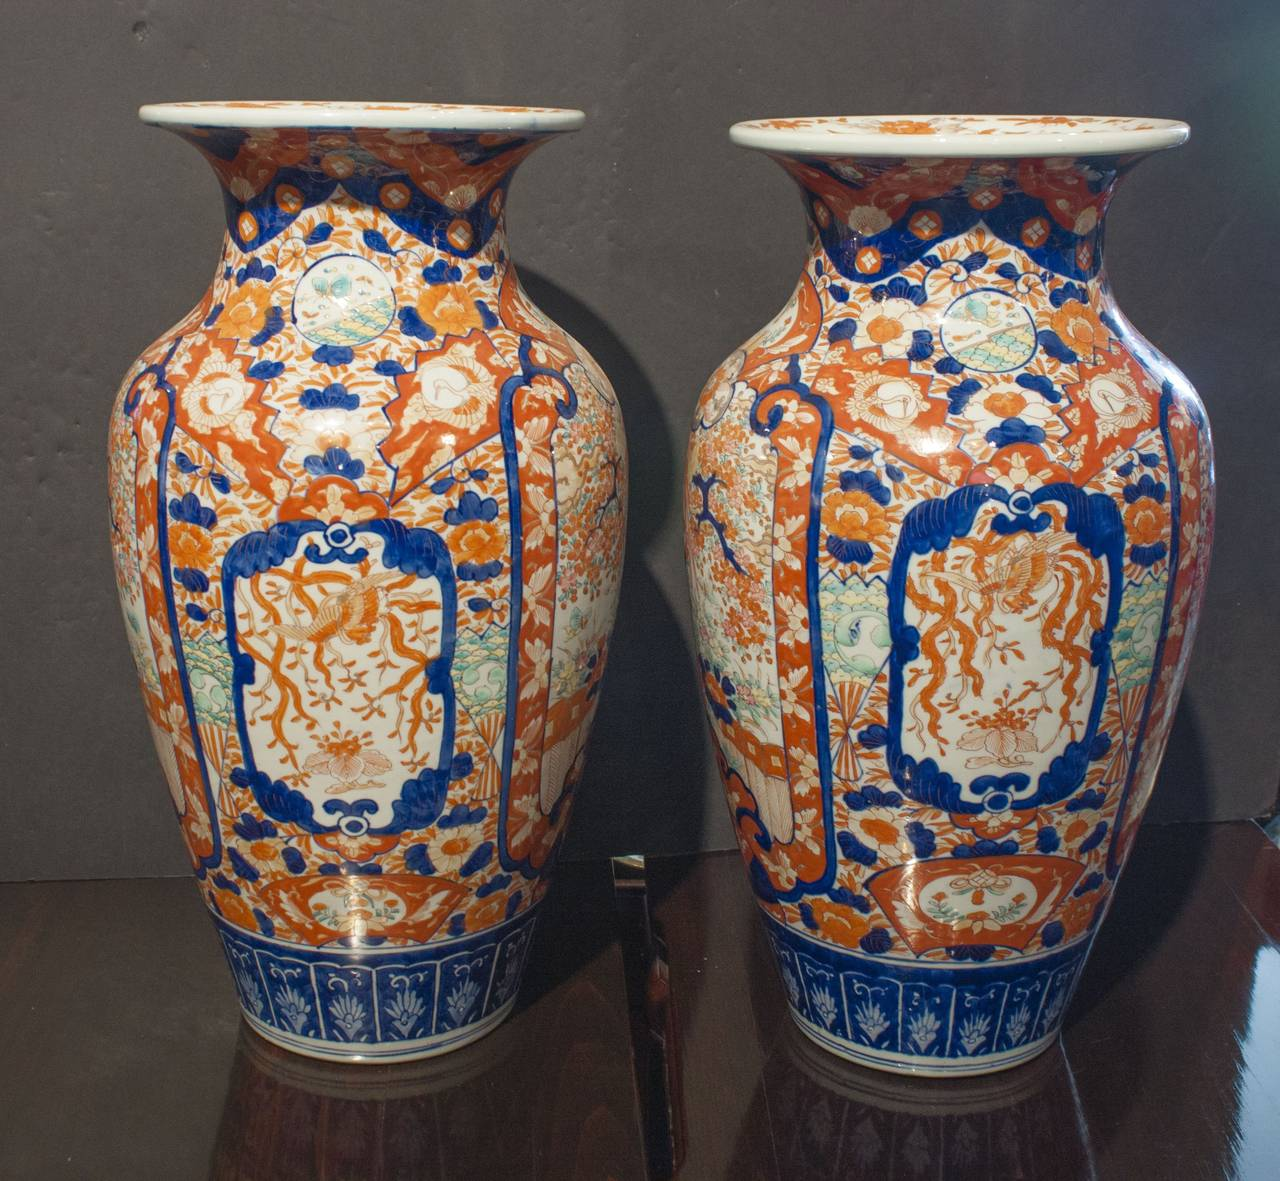 Pair of japanese imari tall vases at 1stdibs meiji period late 19th century japan two densely potted baluster form vases reviewsmspy